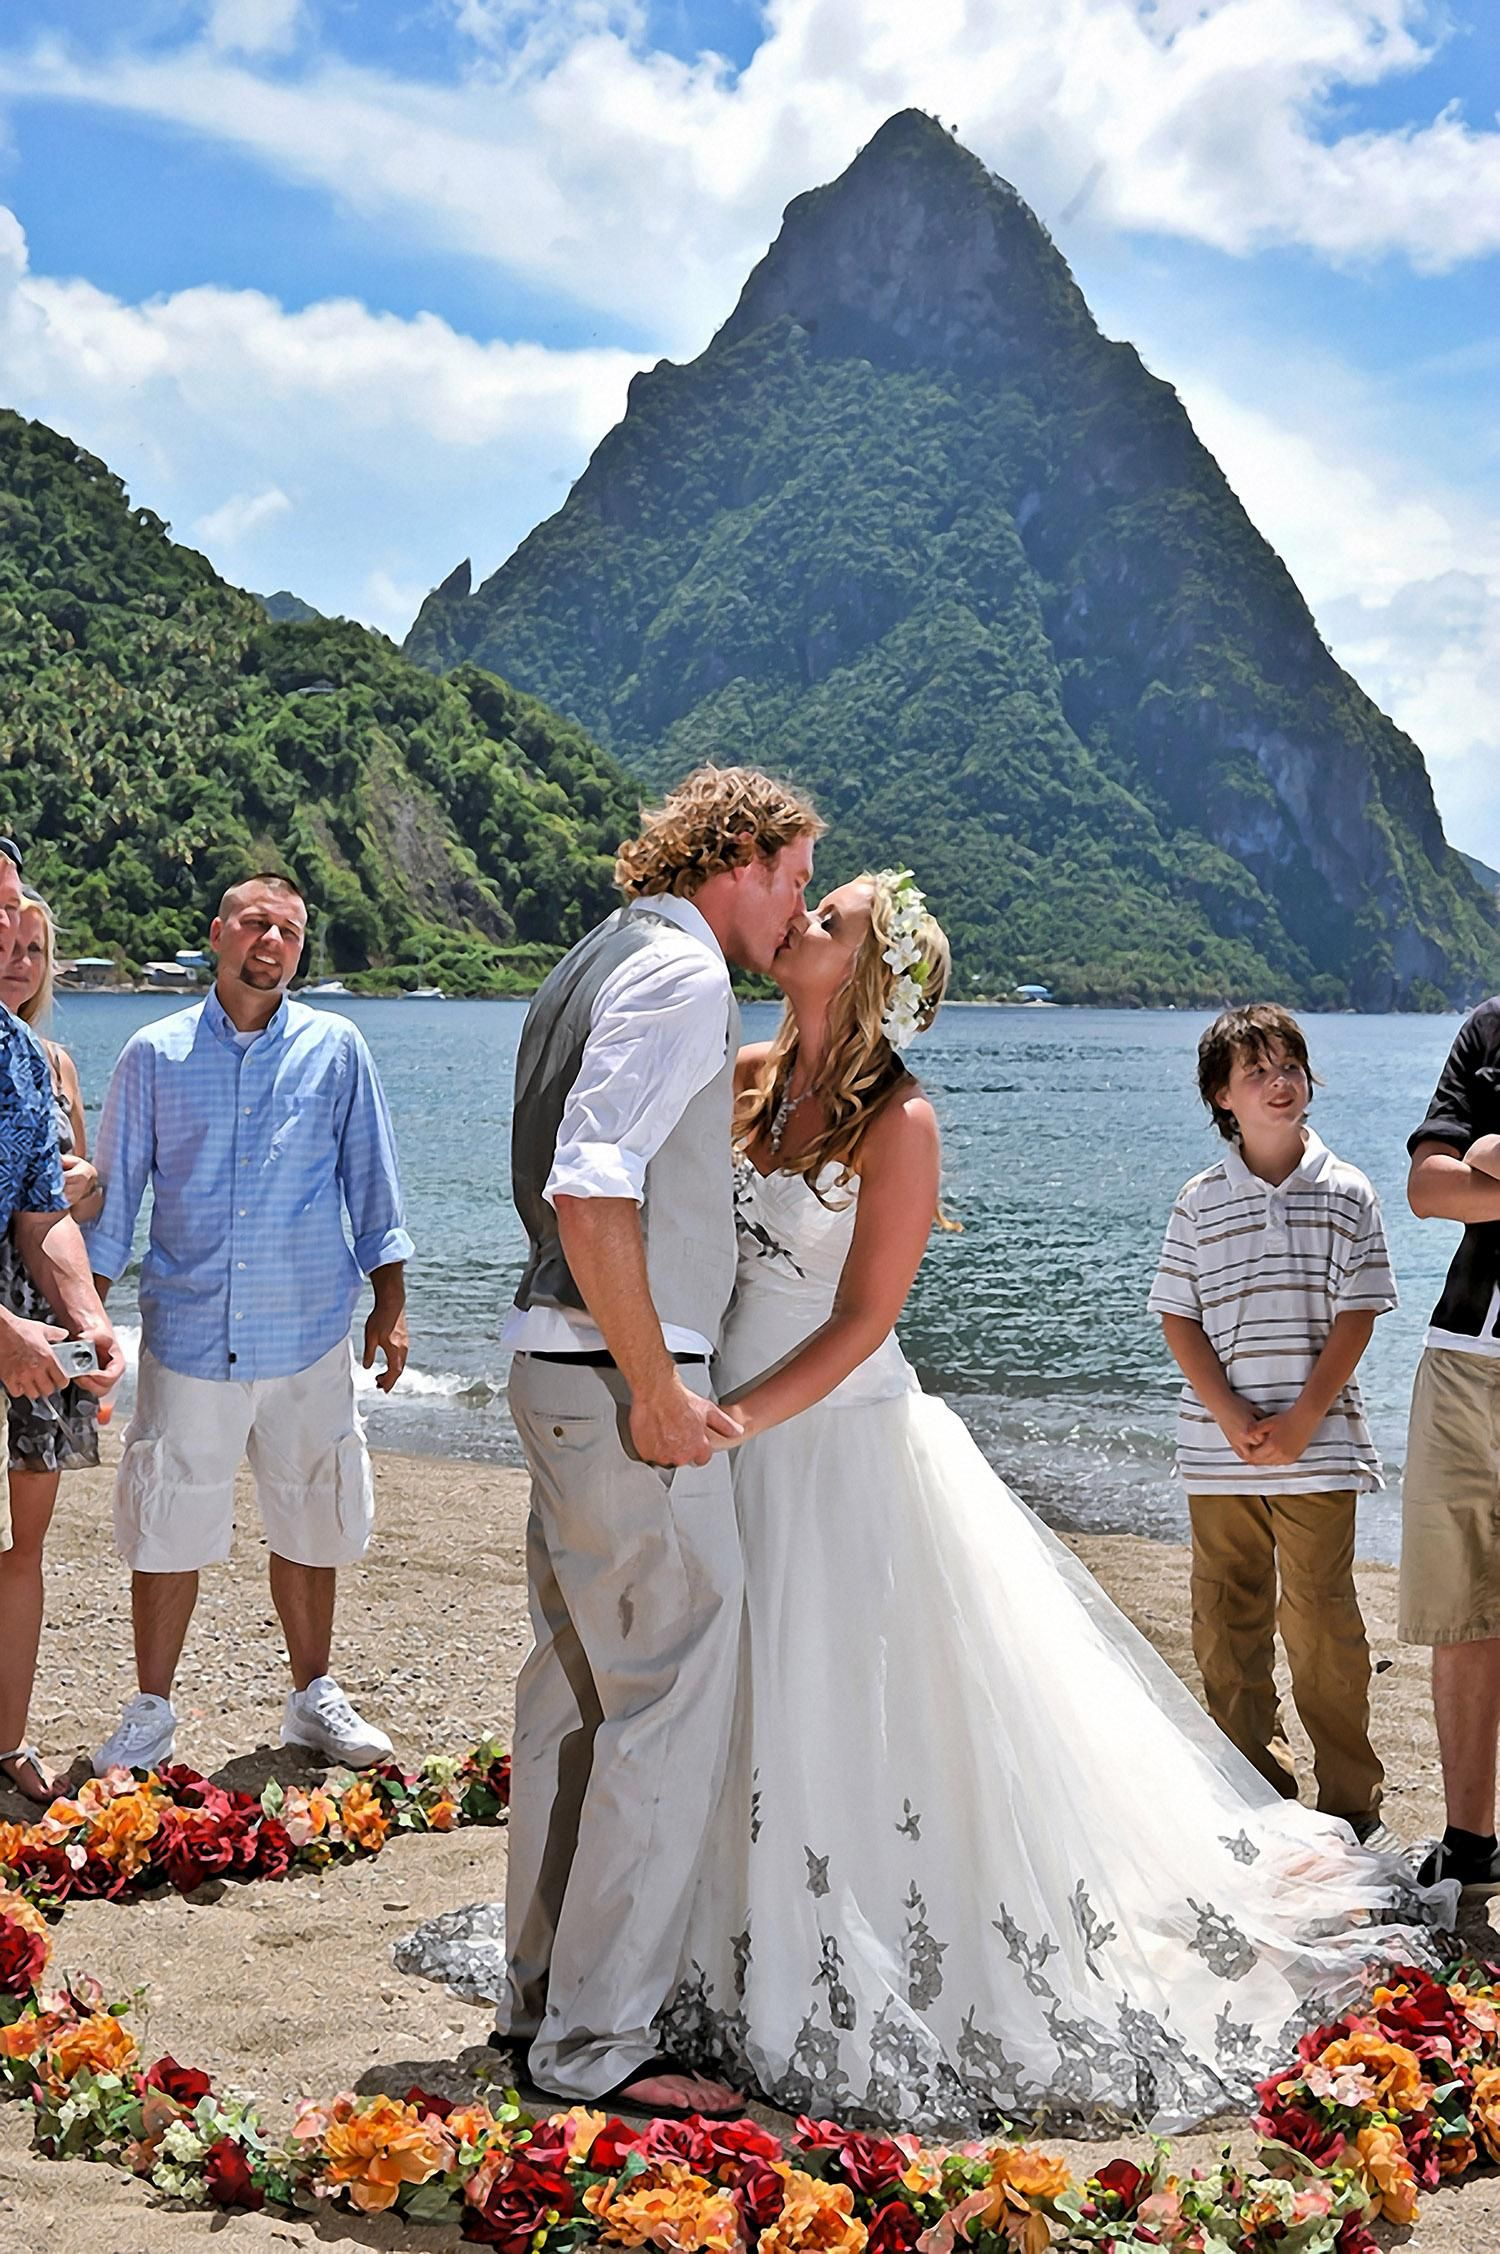 Pions Of The Heart Wedding Package In St Lucia Click Image For More